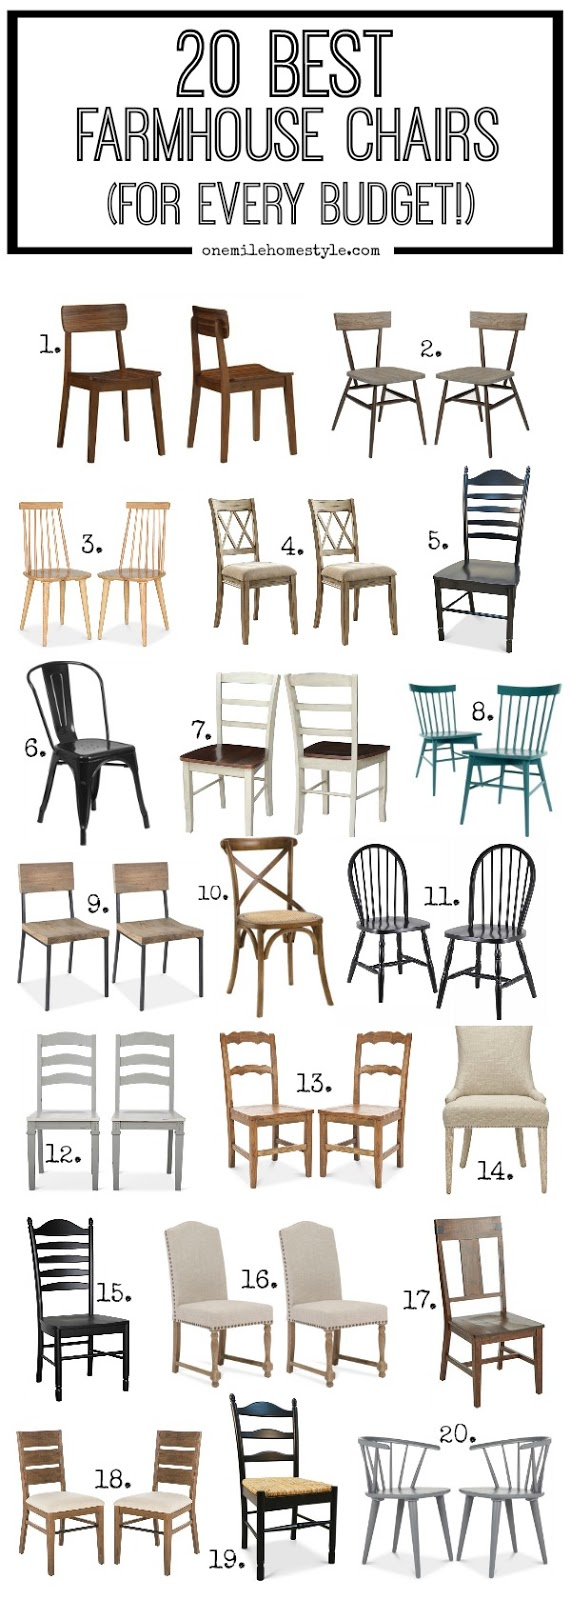 Find the perfect farmhouse style chairs for your home that will fit any budget!